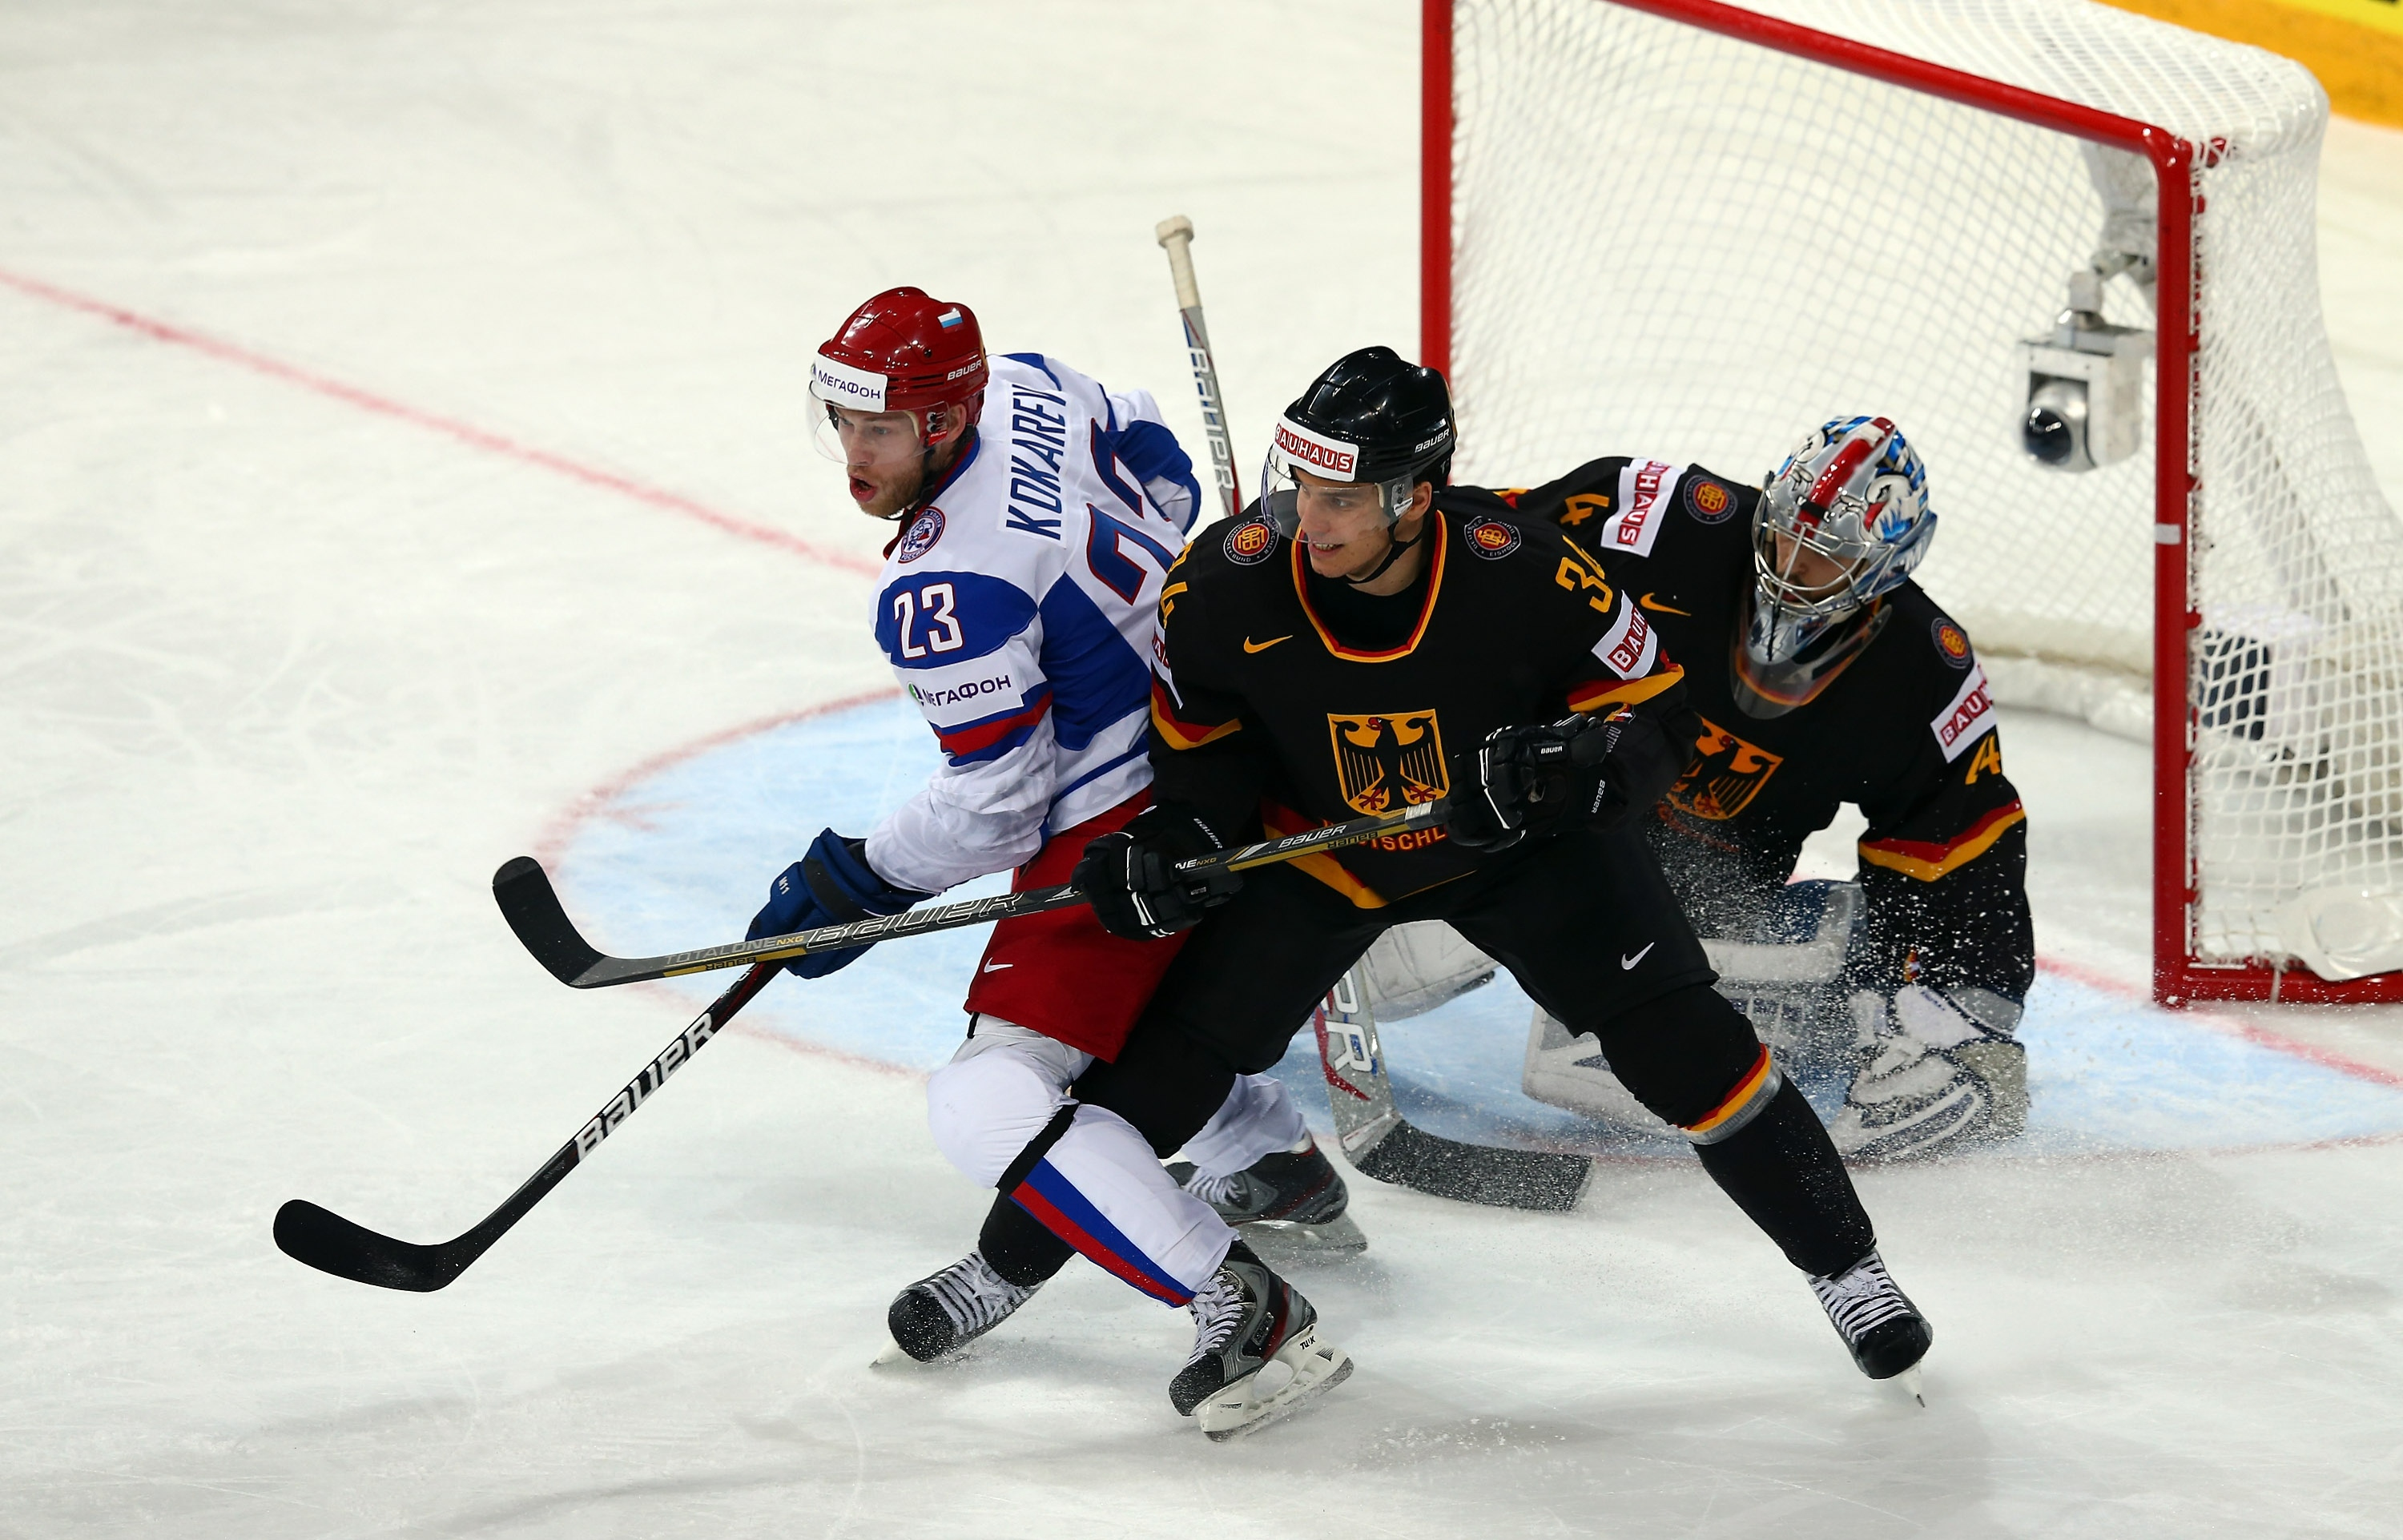 Germany v Russia - 2013 IIHF Ice Hockey World Championship